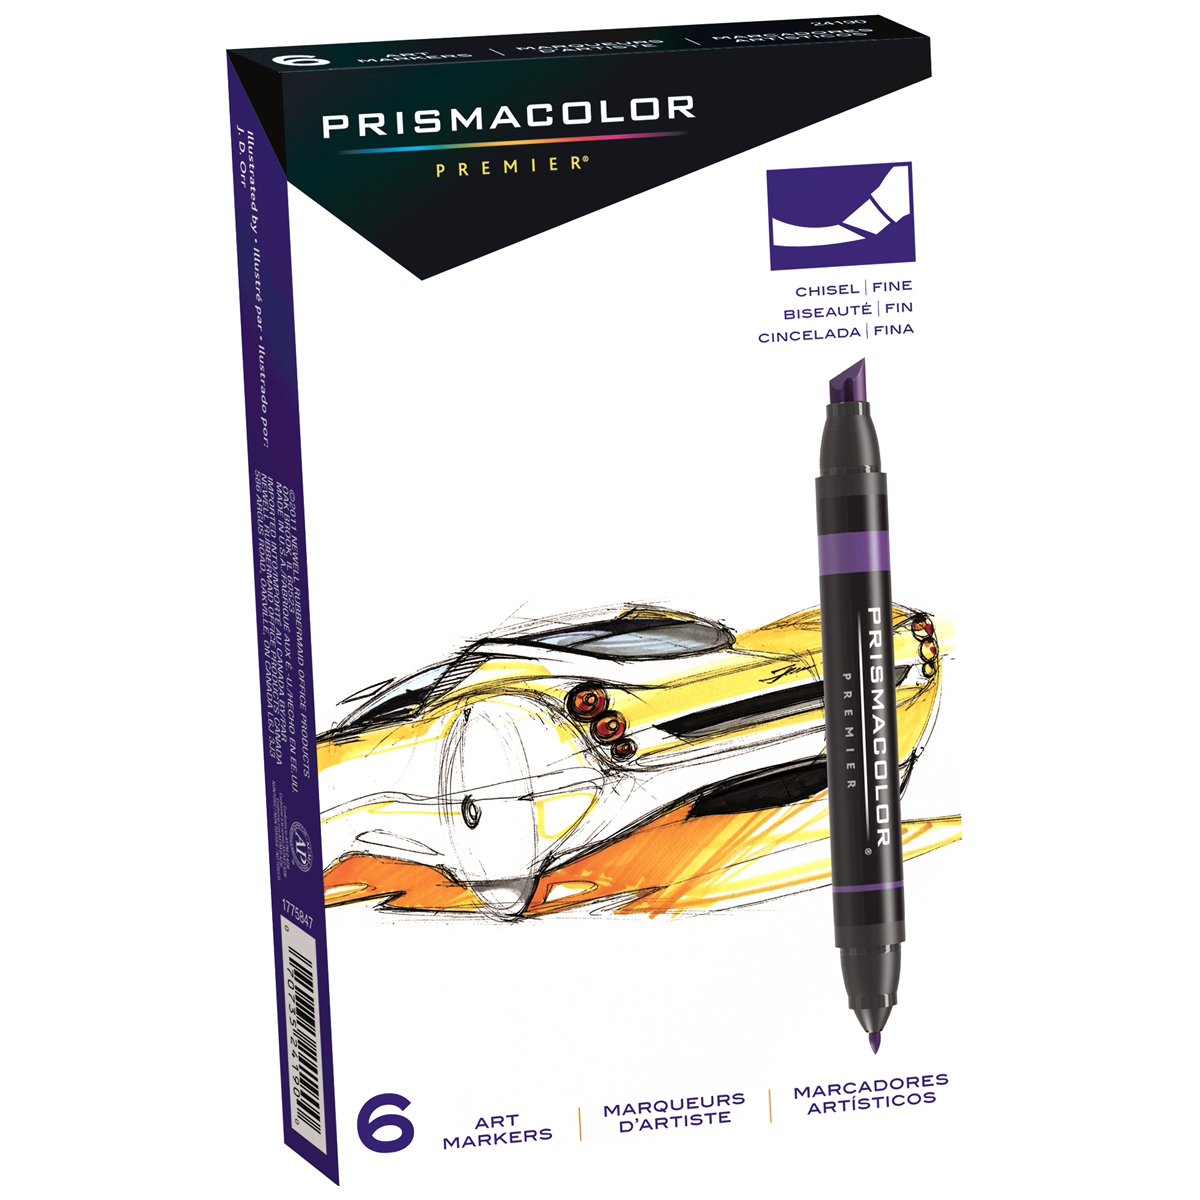 Primsacolor Premier Double Ended Chisel Tip and Fine Tip Art Markers, 6 Colored Markers